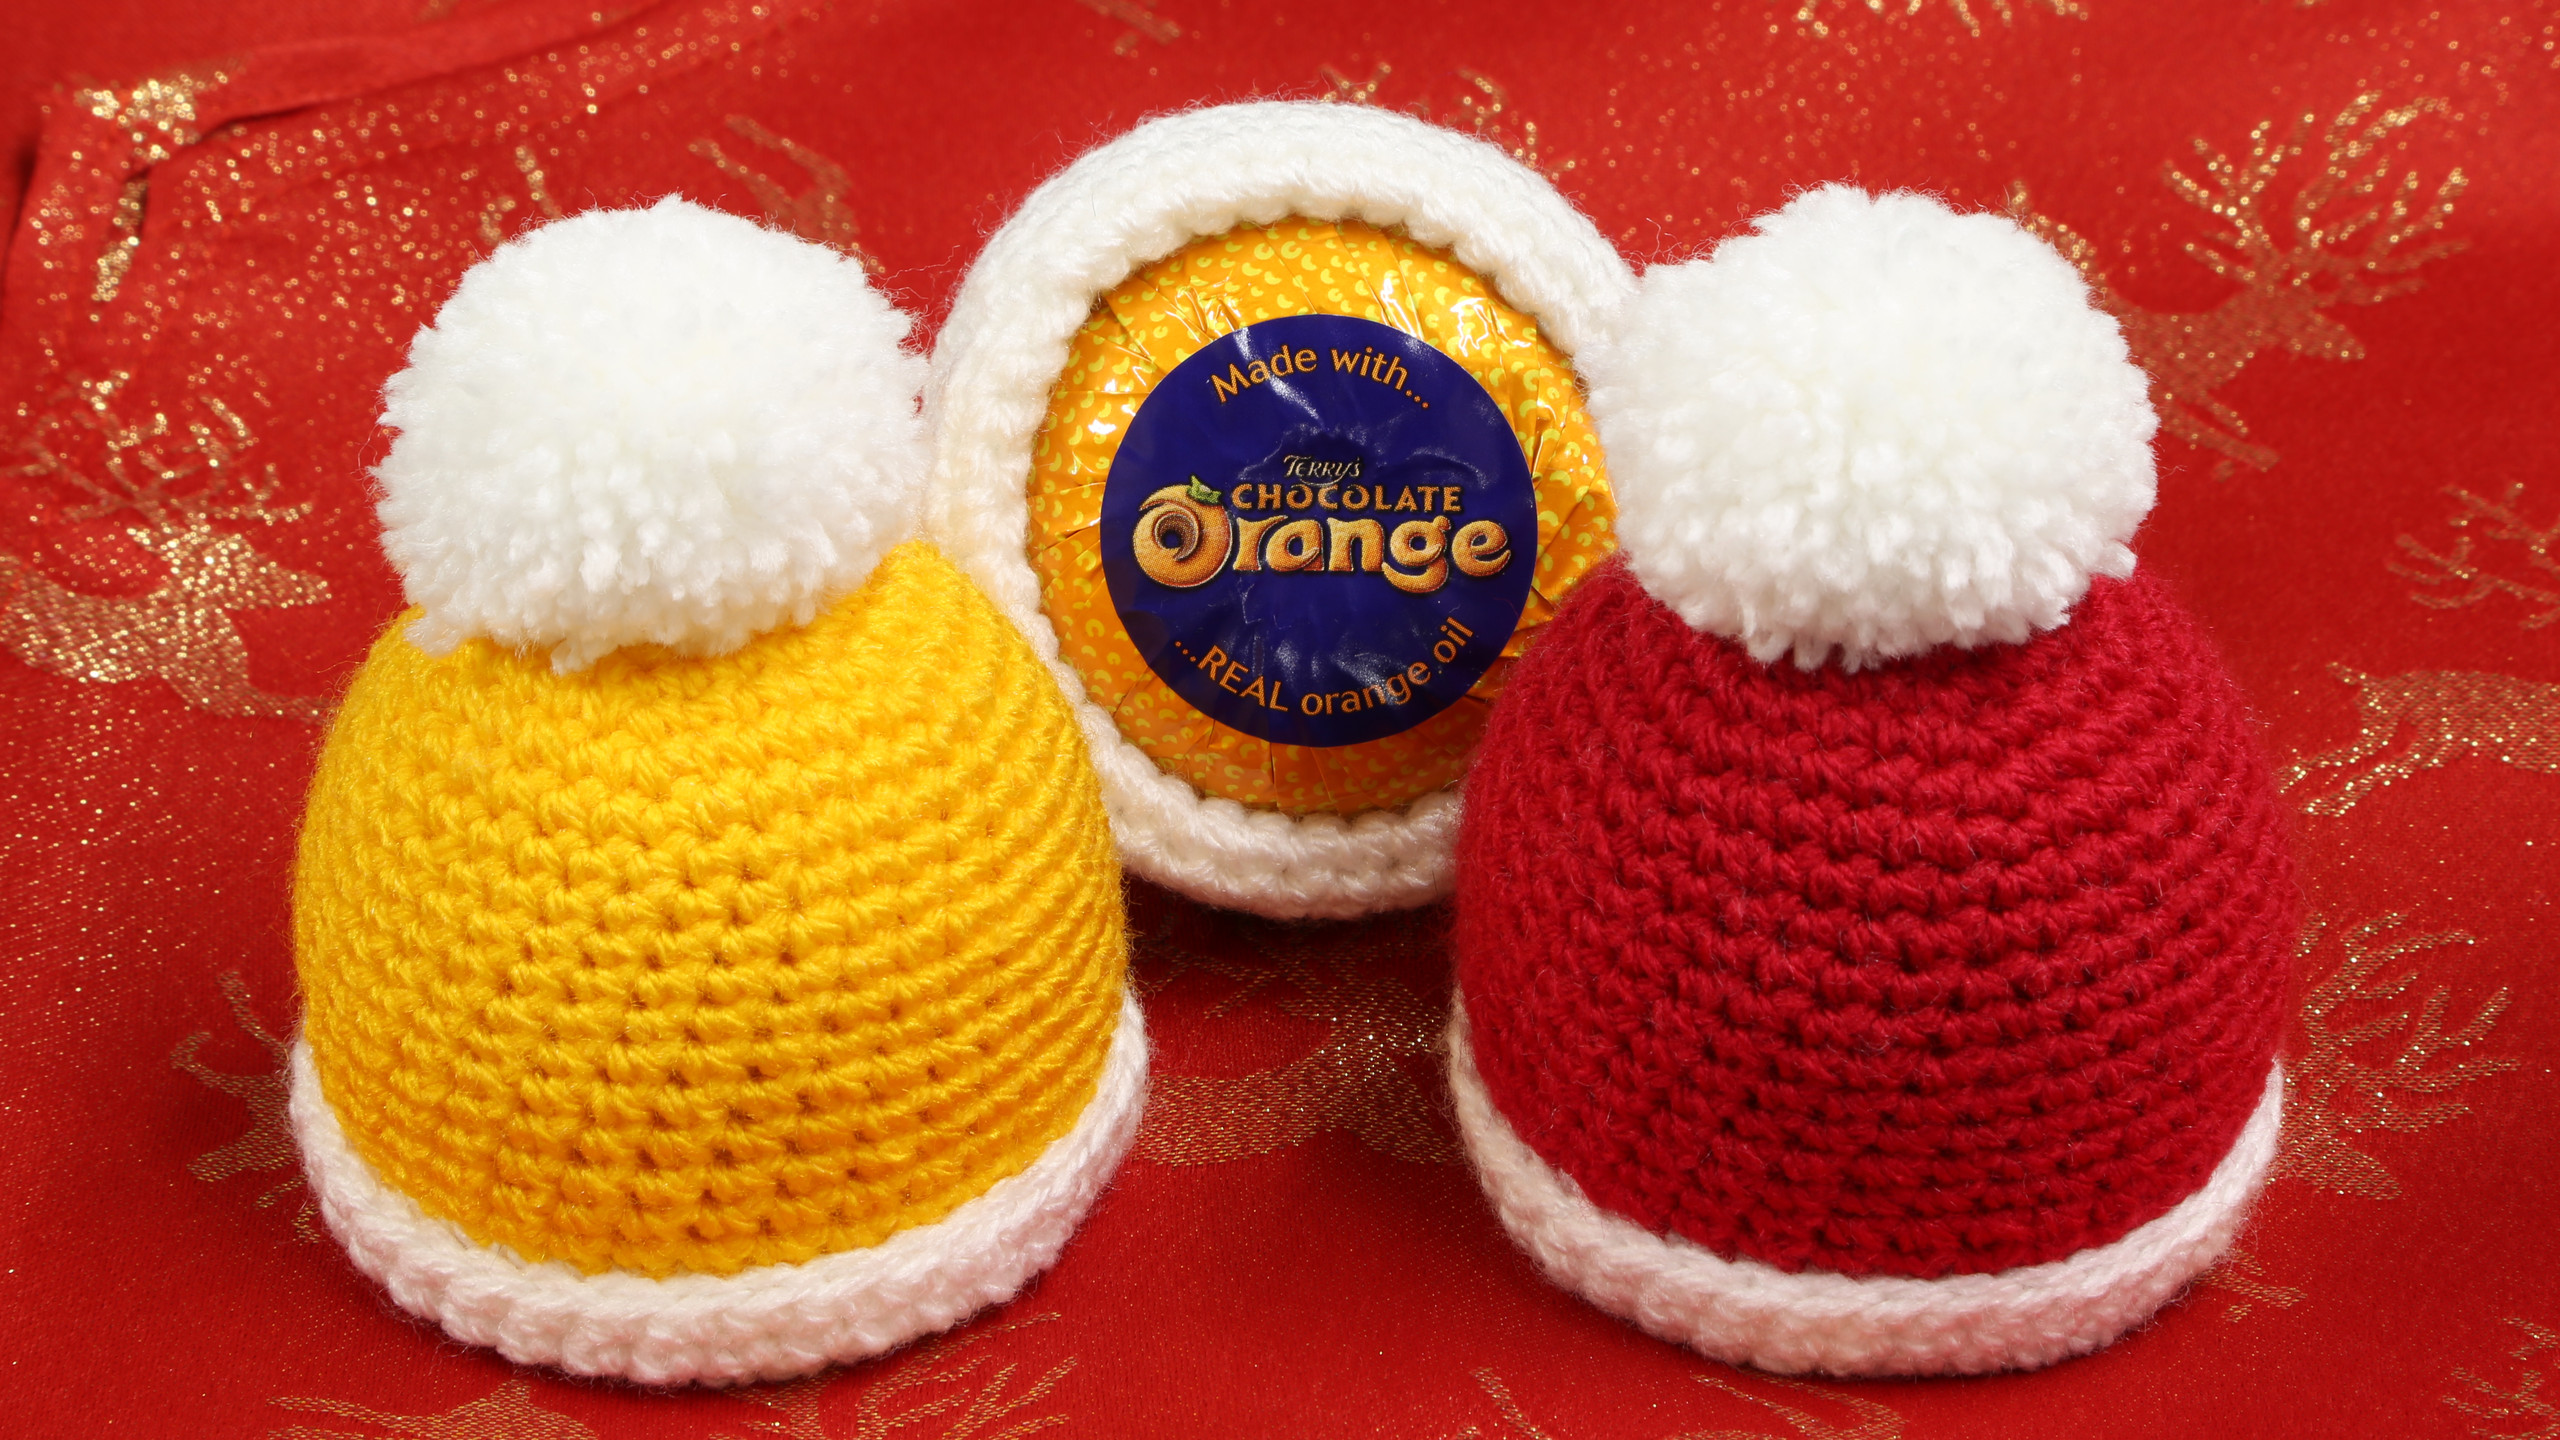 Chocolate orange hats